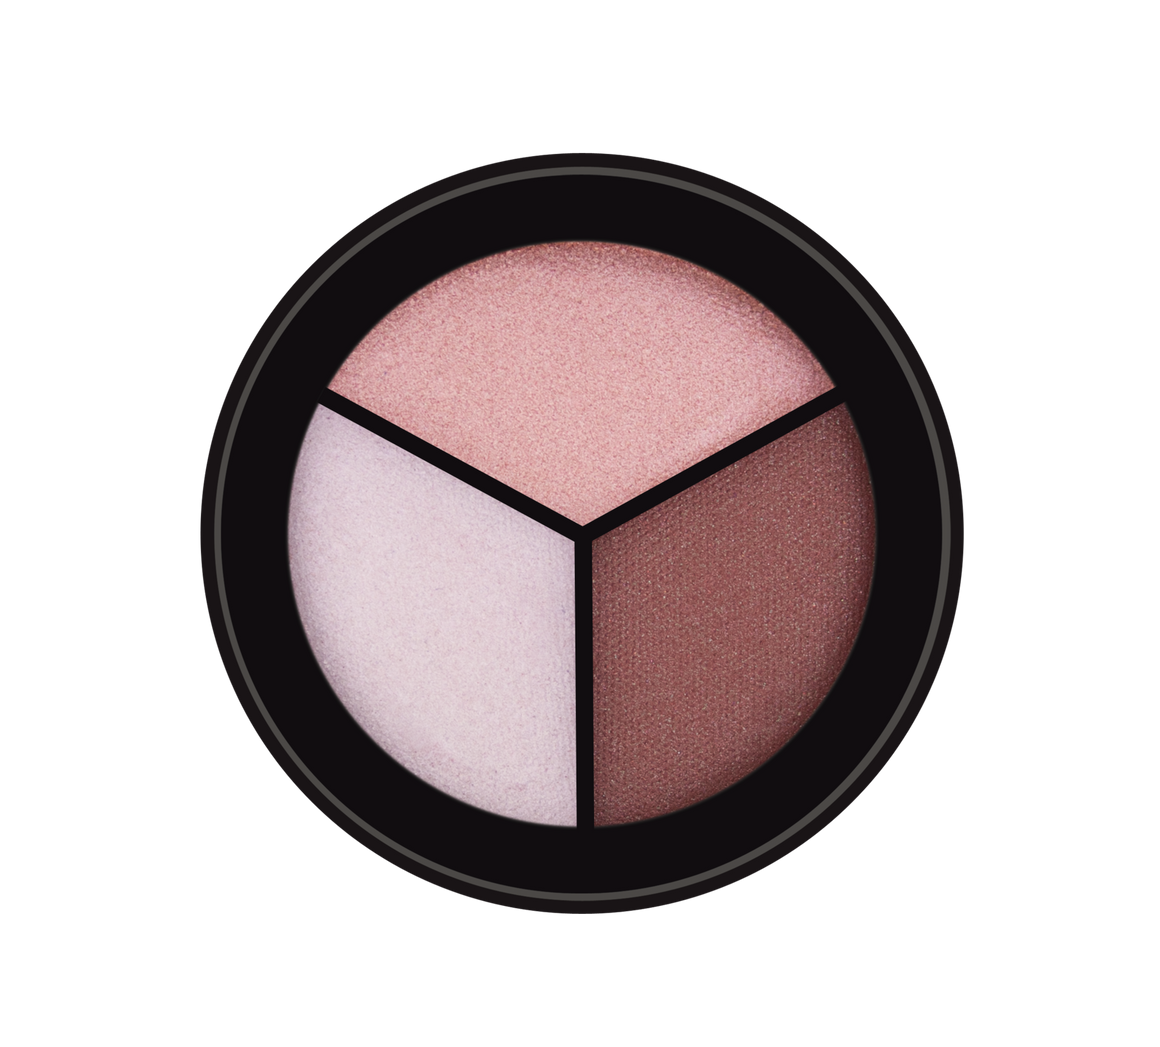 Hean Colour Stay On Trio Eyeshadow